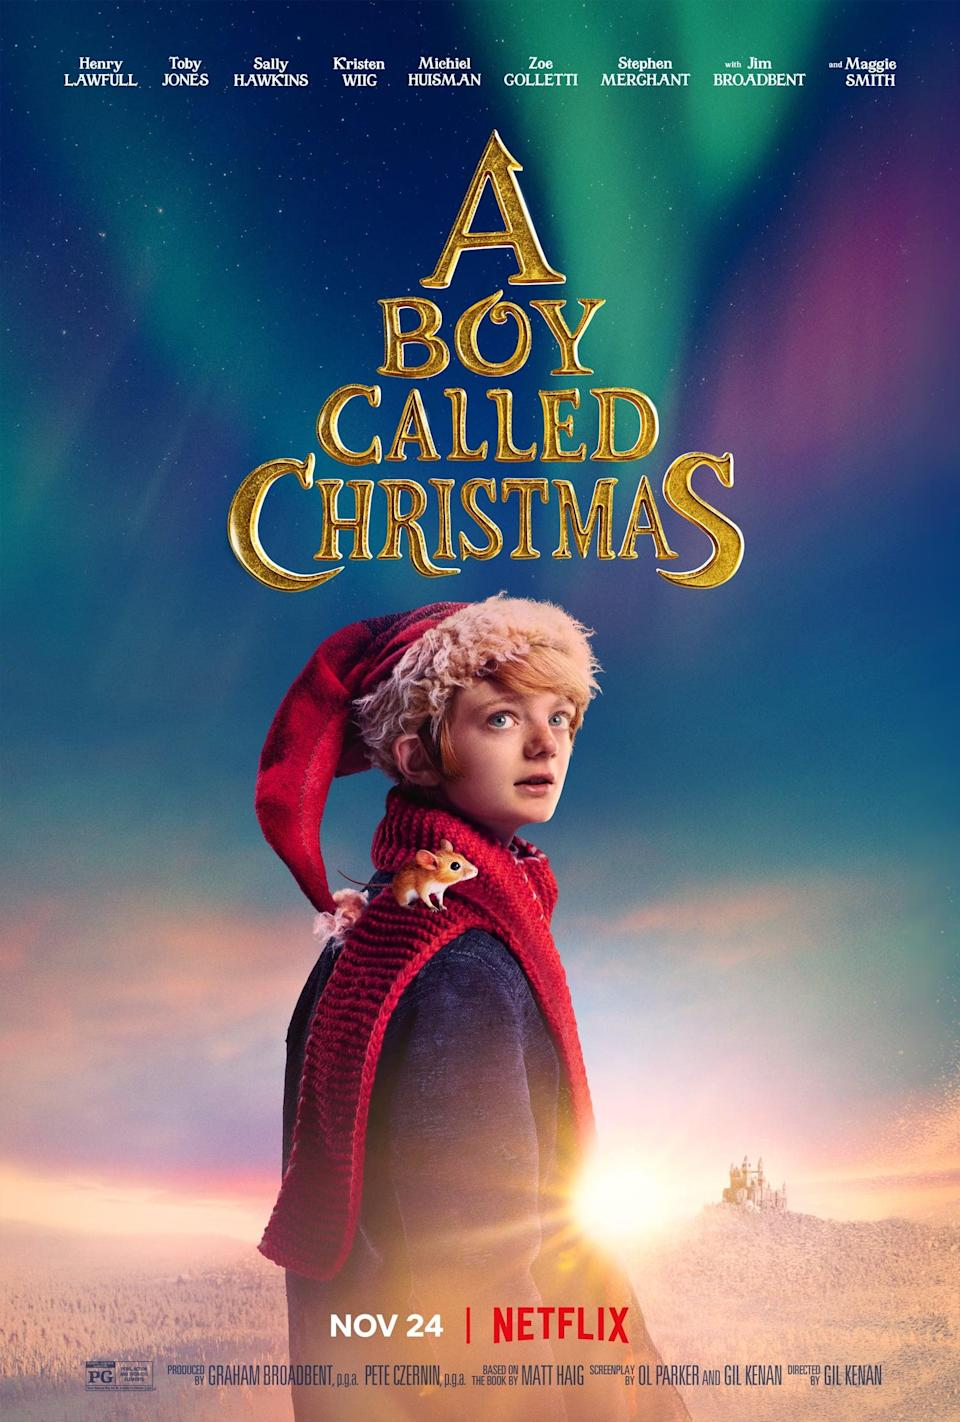 """<p>Based on the book of the same name by Matt Haig, this playful reimagining of the story of Father Christmas follows a boy named Nikolas who sets off North on a search to find his father. You can expect to see some faces you recognize, including Kristen Wiig and Maggie Smith. </p> <p><strong>When it's available: </strong><a href=""""http://www.netflix.com/title/81029733"""" class=""""link rapid-noclick-resp"""" rel=""""nofollow noopener"""" target=""""_blank"""" data-ylk=""""slk:Nov. 24"""">Nov. 24</a></p>"""